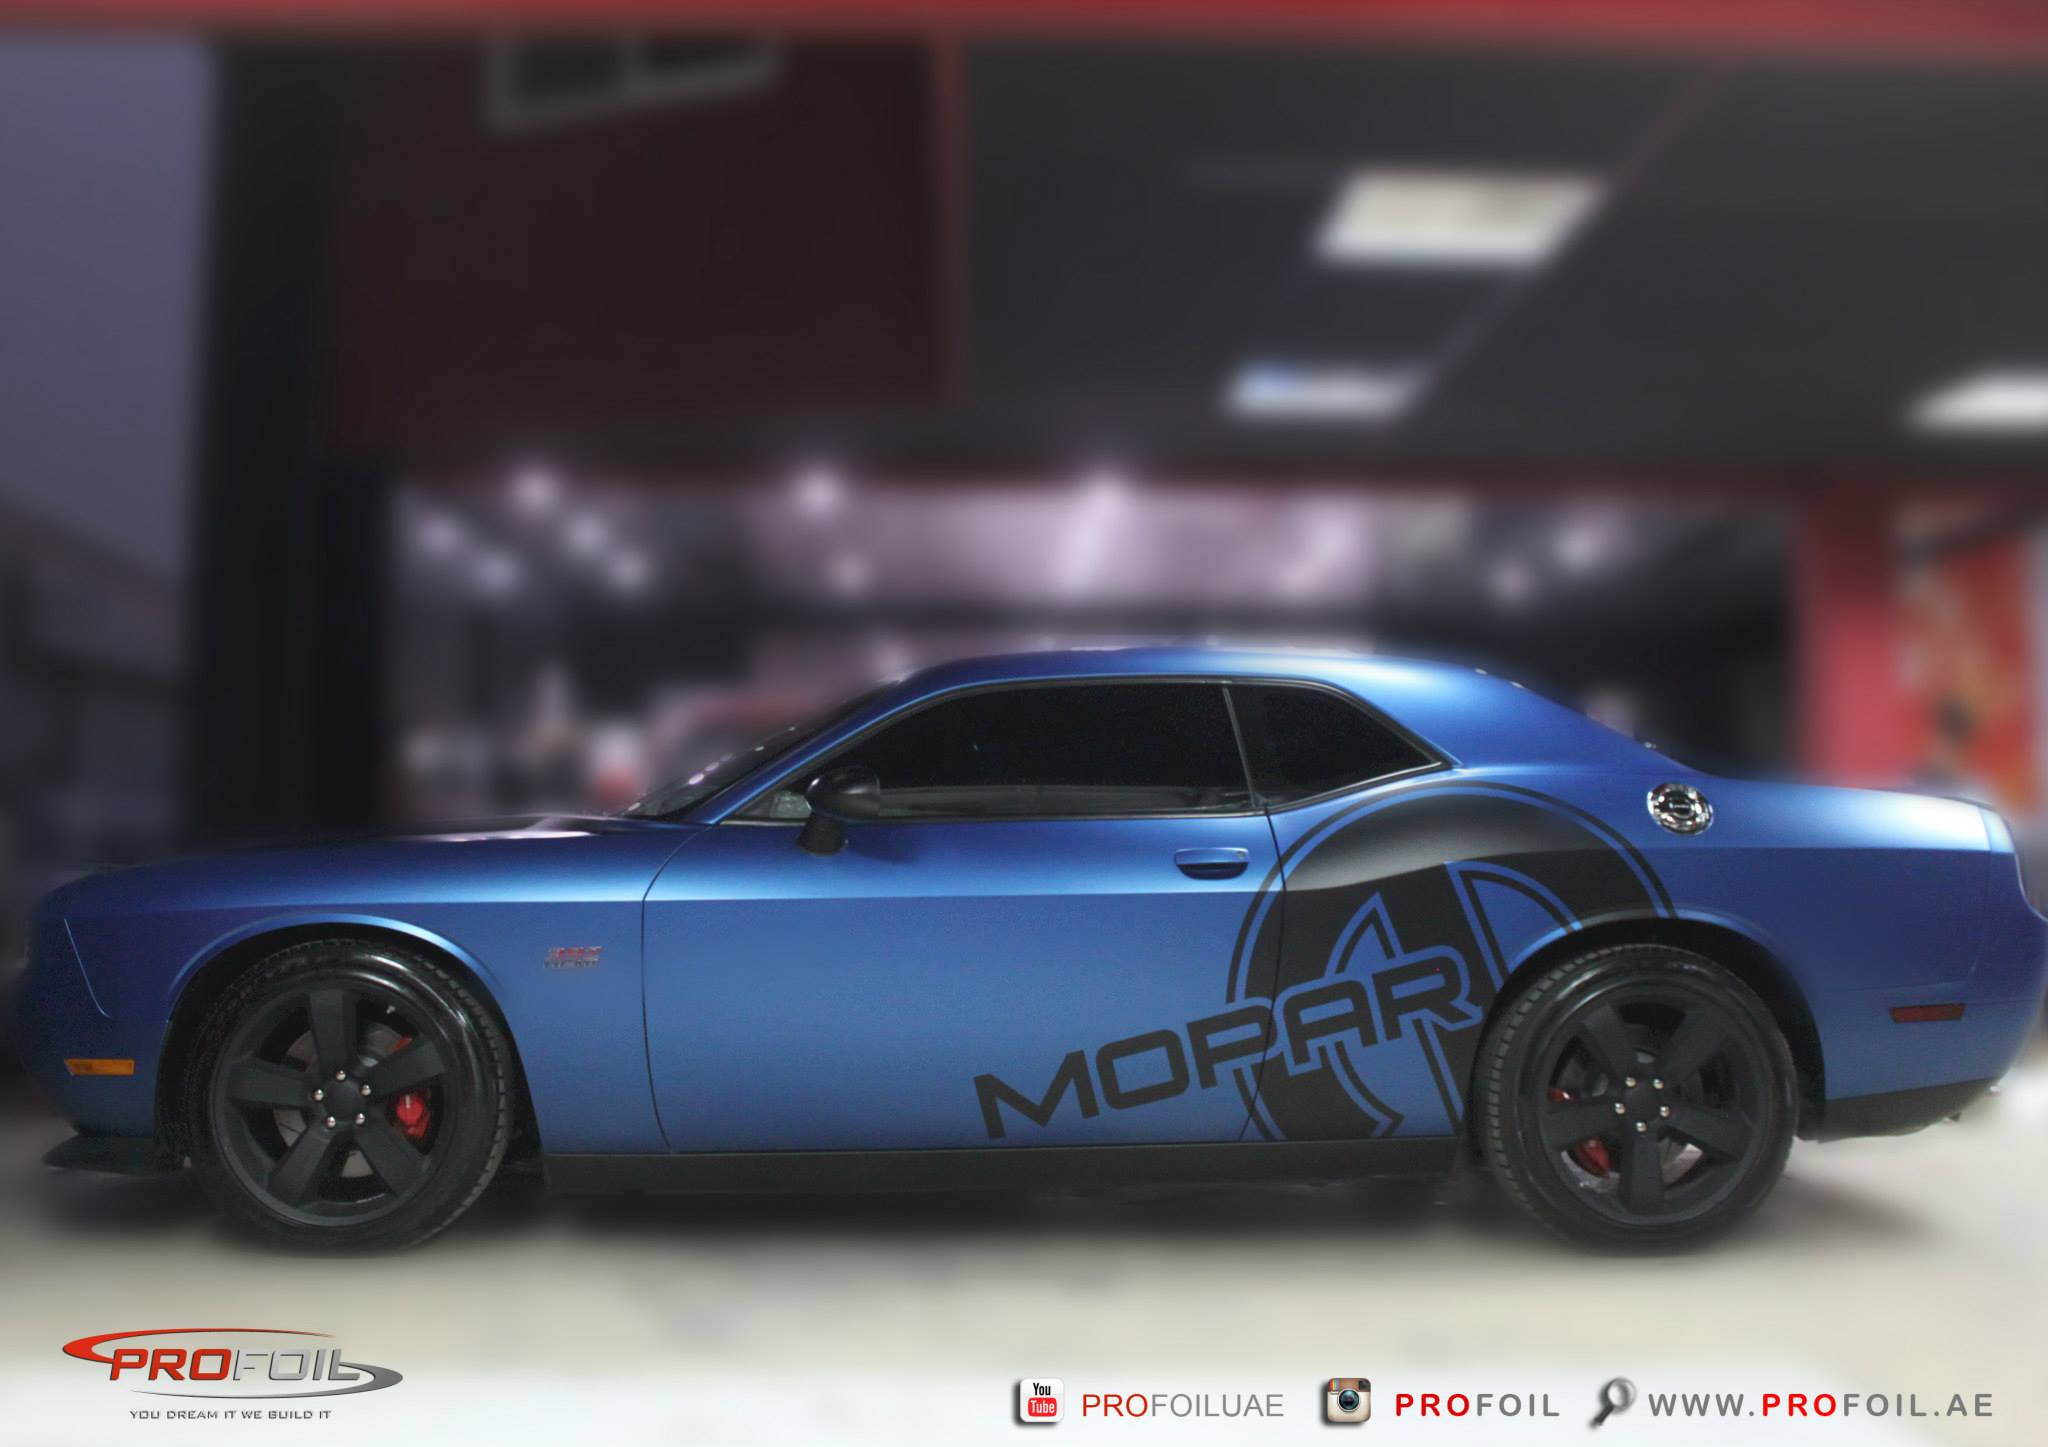 Dodge Challenger Gets Matt Blue Wrap From Profoil